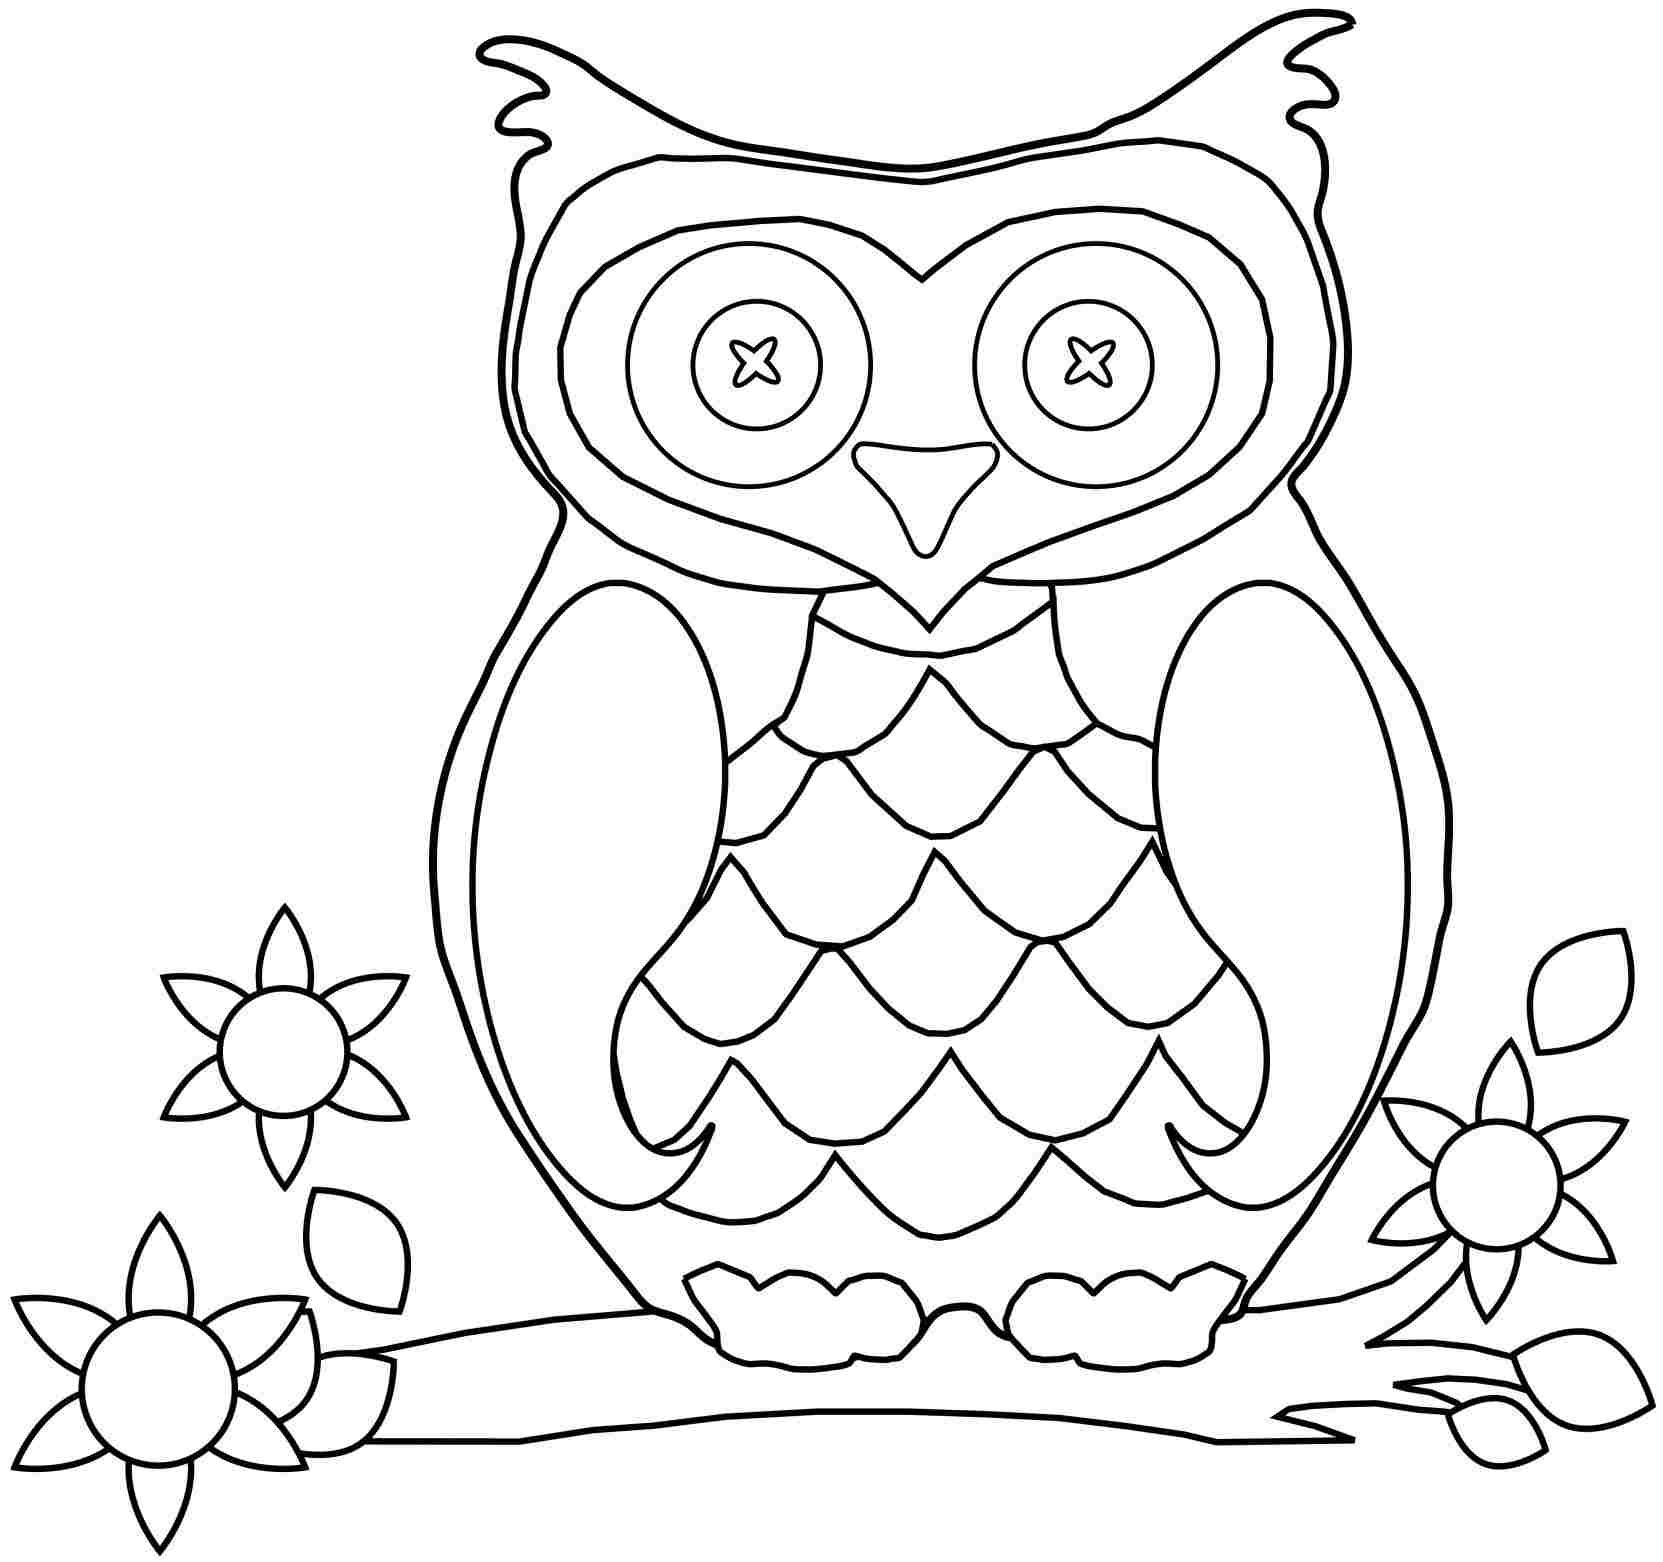 owl coloring pages for girls owl coloring page gallery glass projects pinterest girls coloring owl pages for